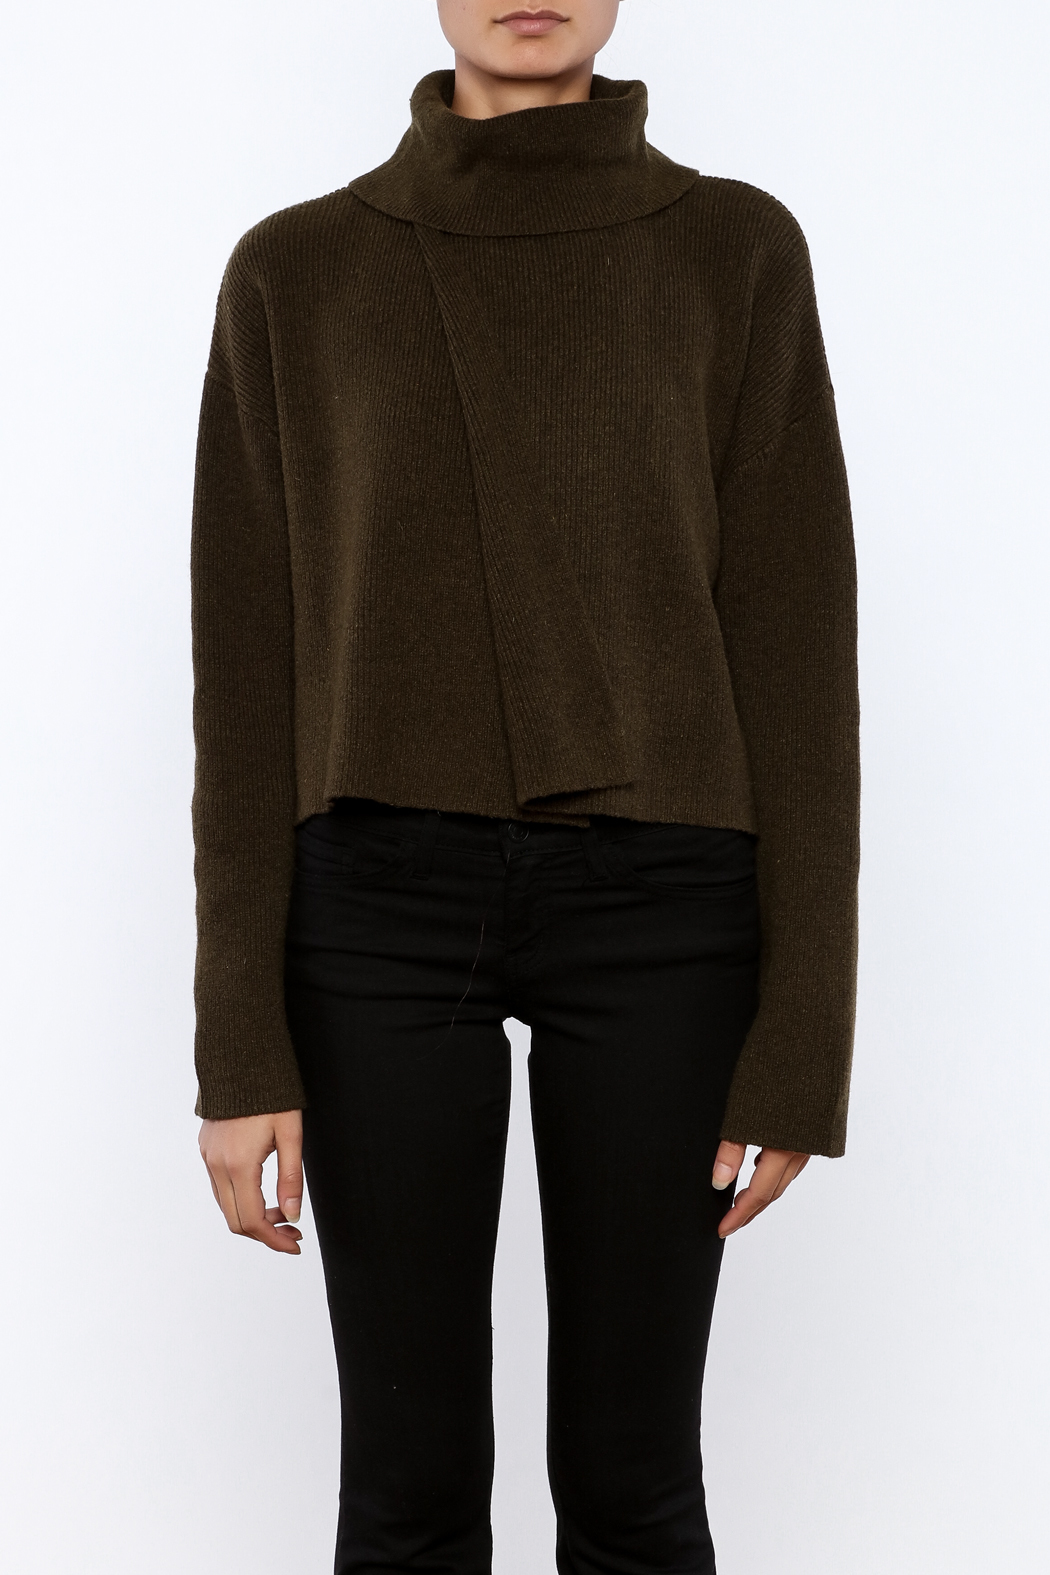 J.O.A. Turtleneck Crop Sweater - Side Cropped Image